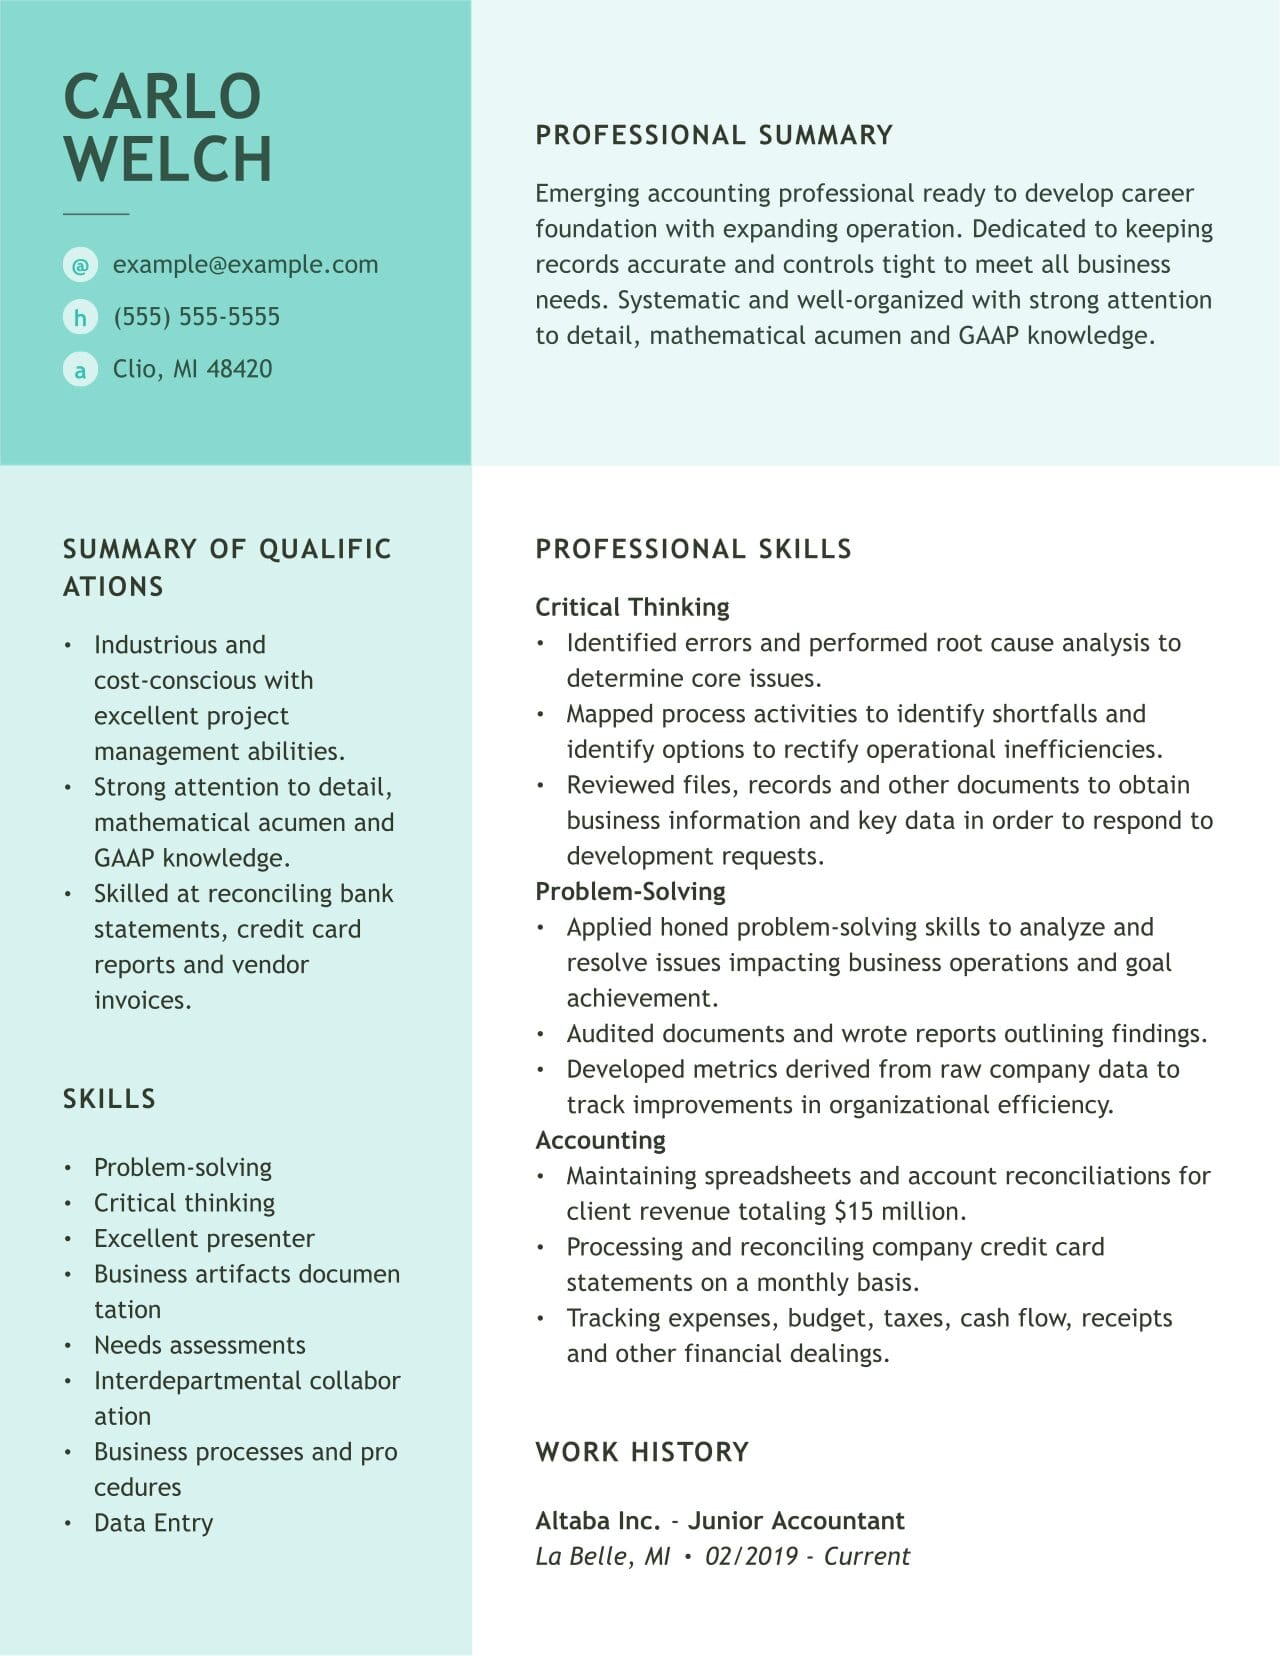 accounting resume examples and guides myperfectresume for accountant position Resume Resume For Accountant Position